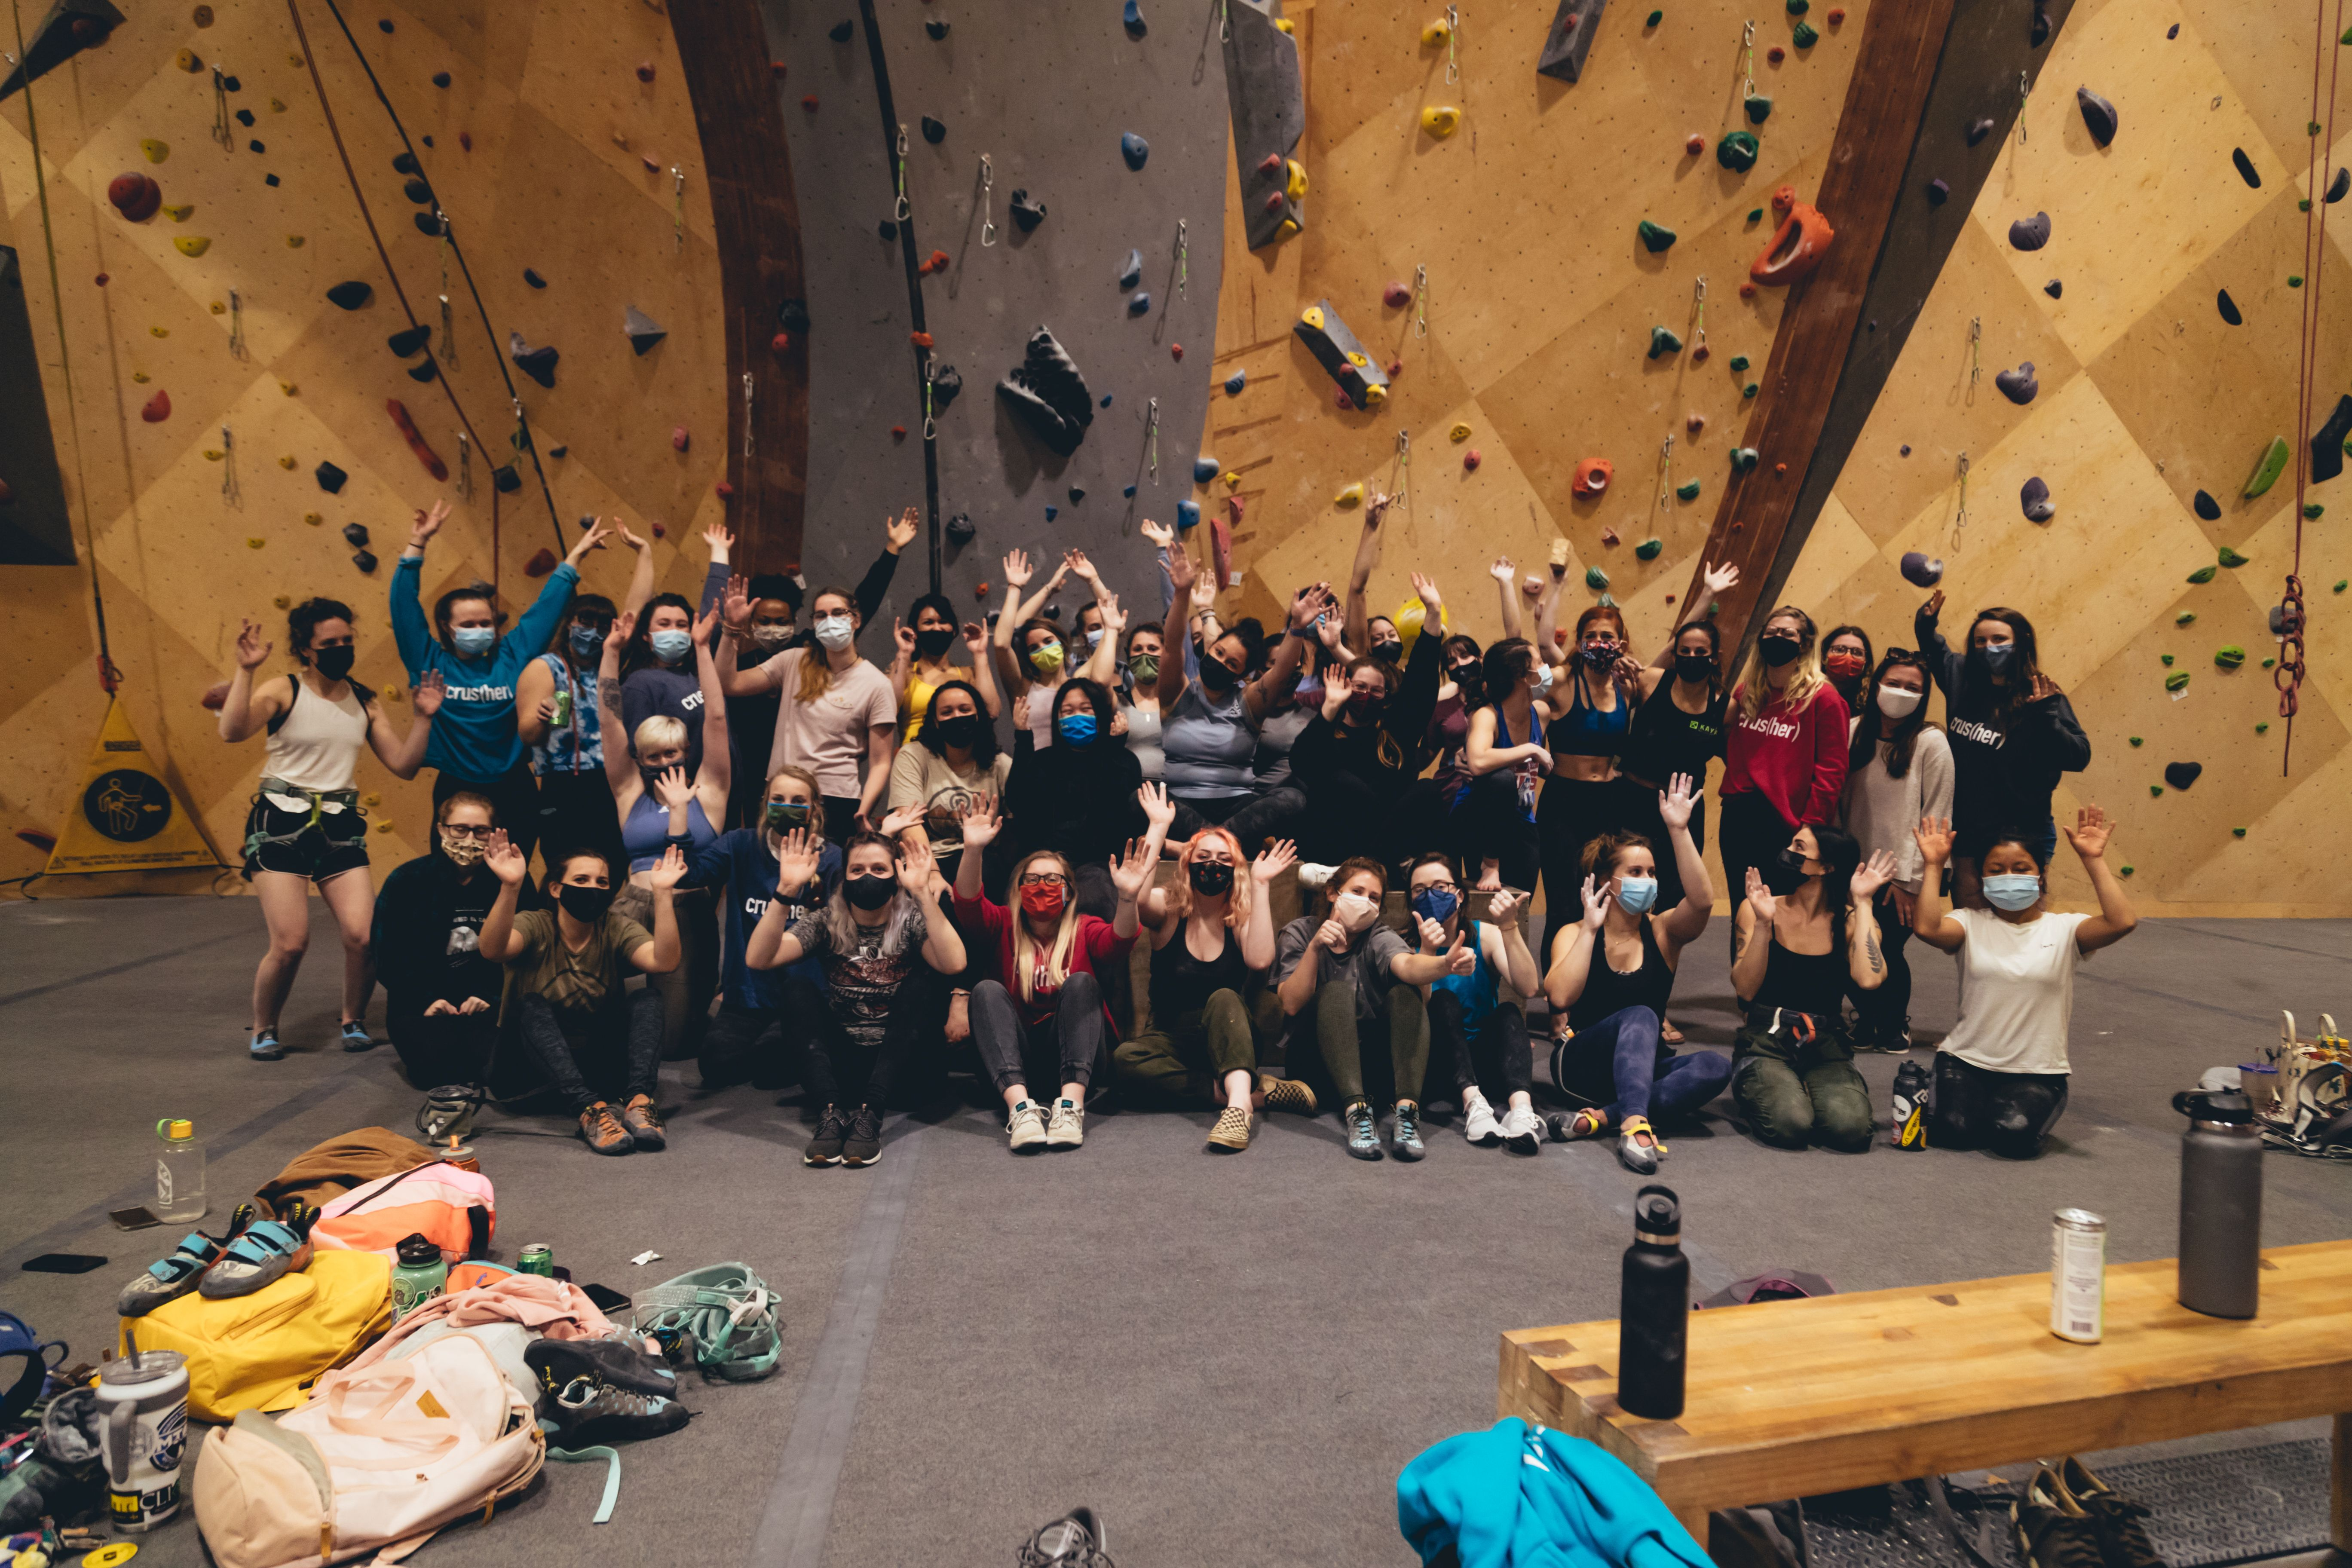 Group indoor climbers wearing masks